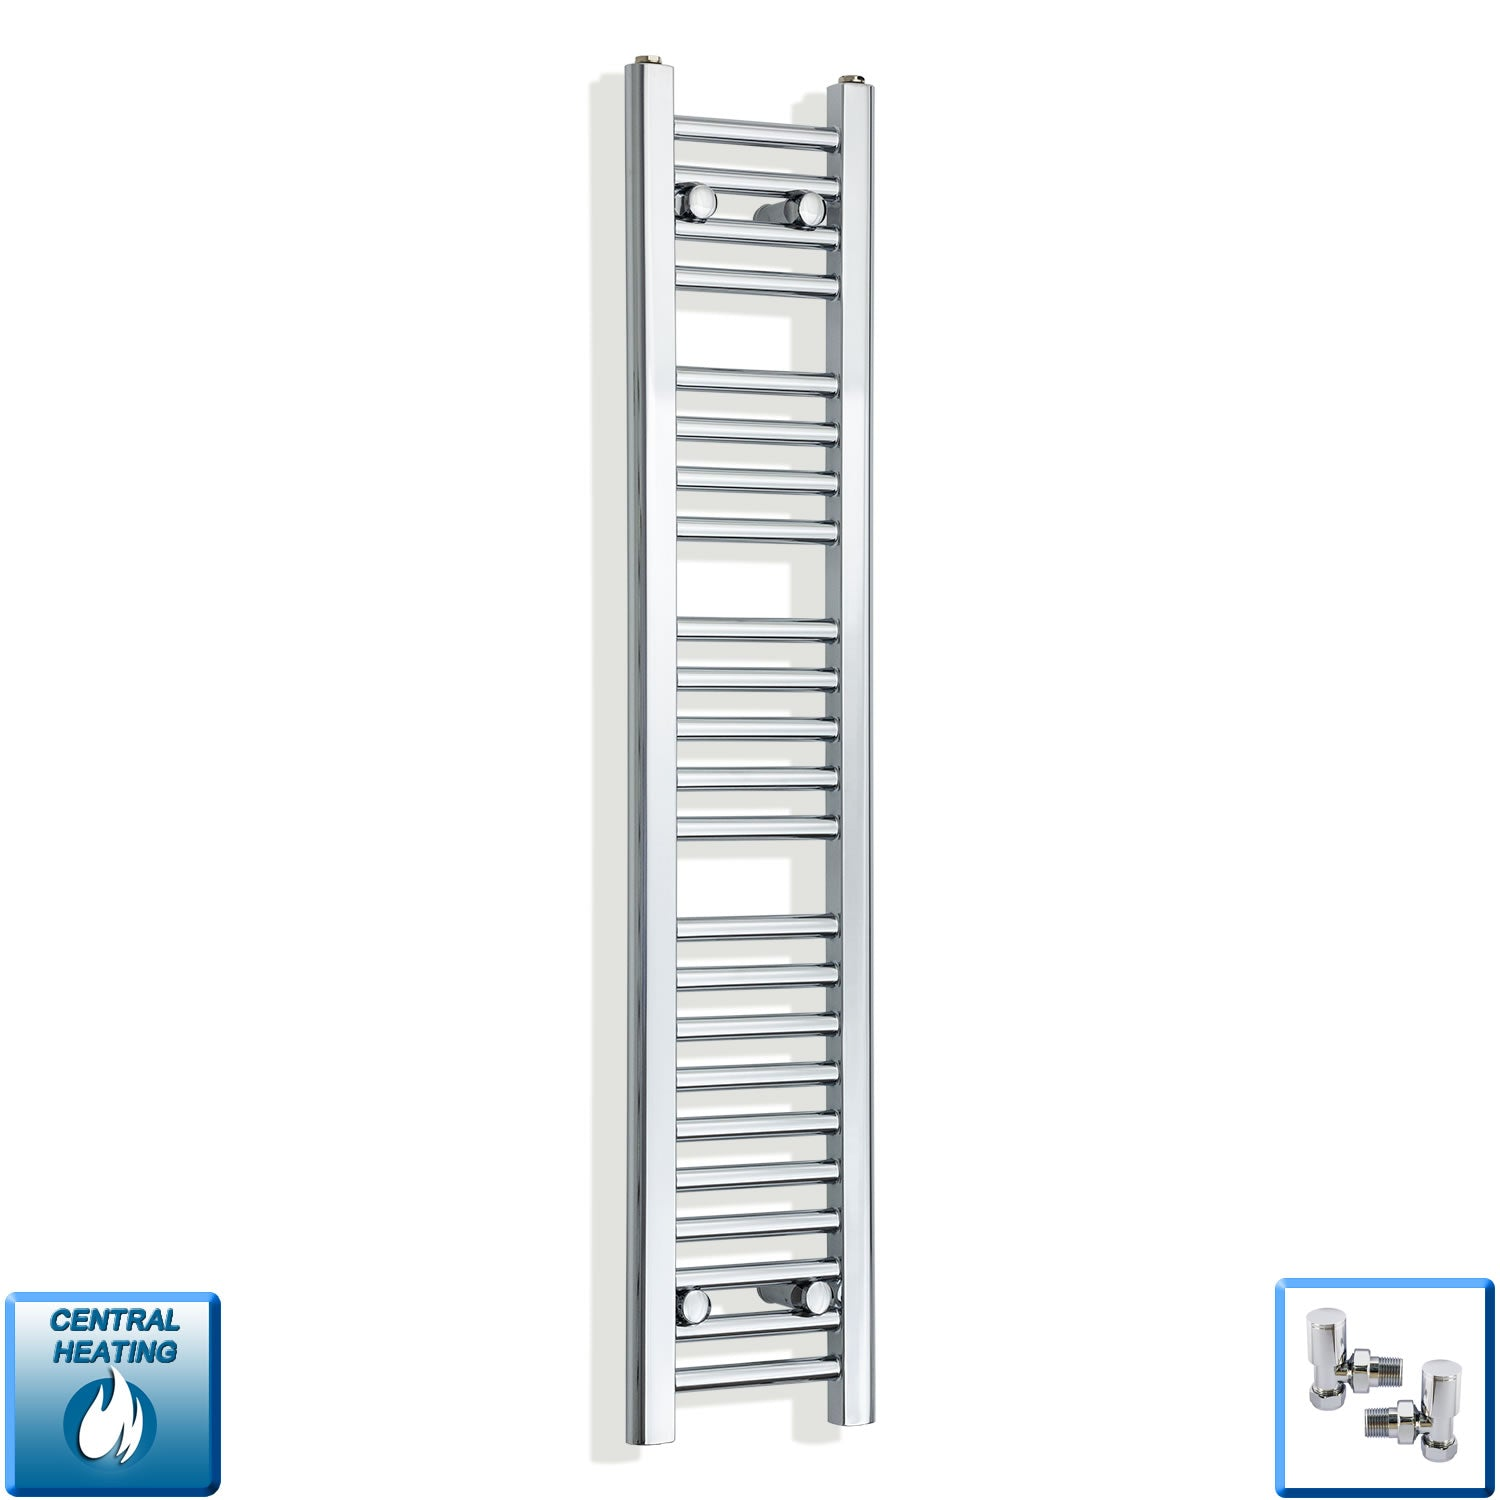 200mm Wide 1200mm High Chrome Towel Rail Radiator With Angled Valve